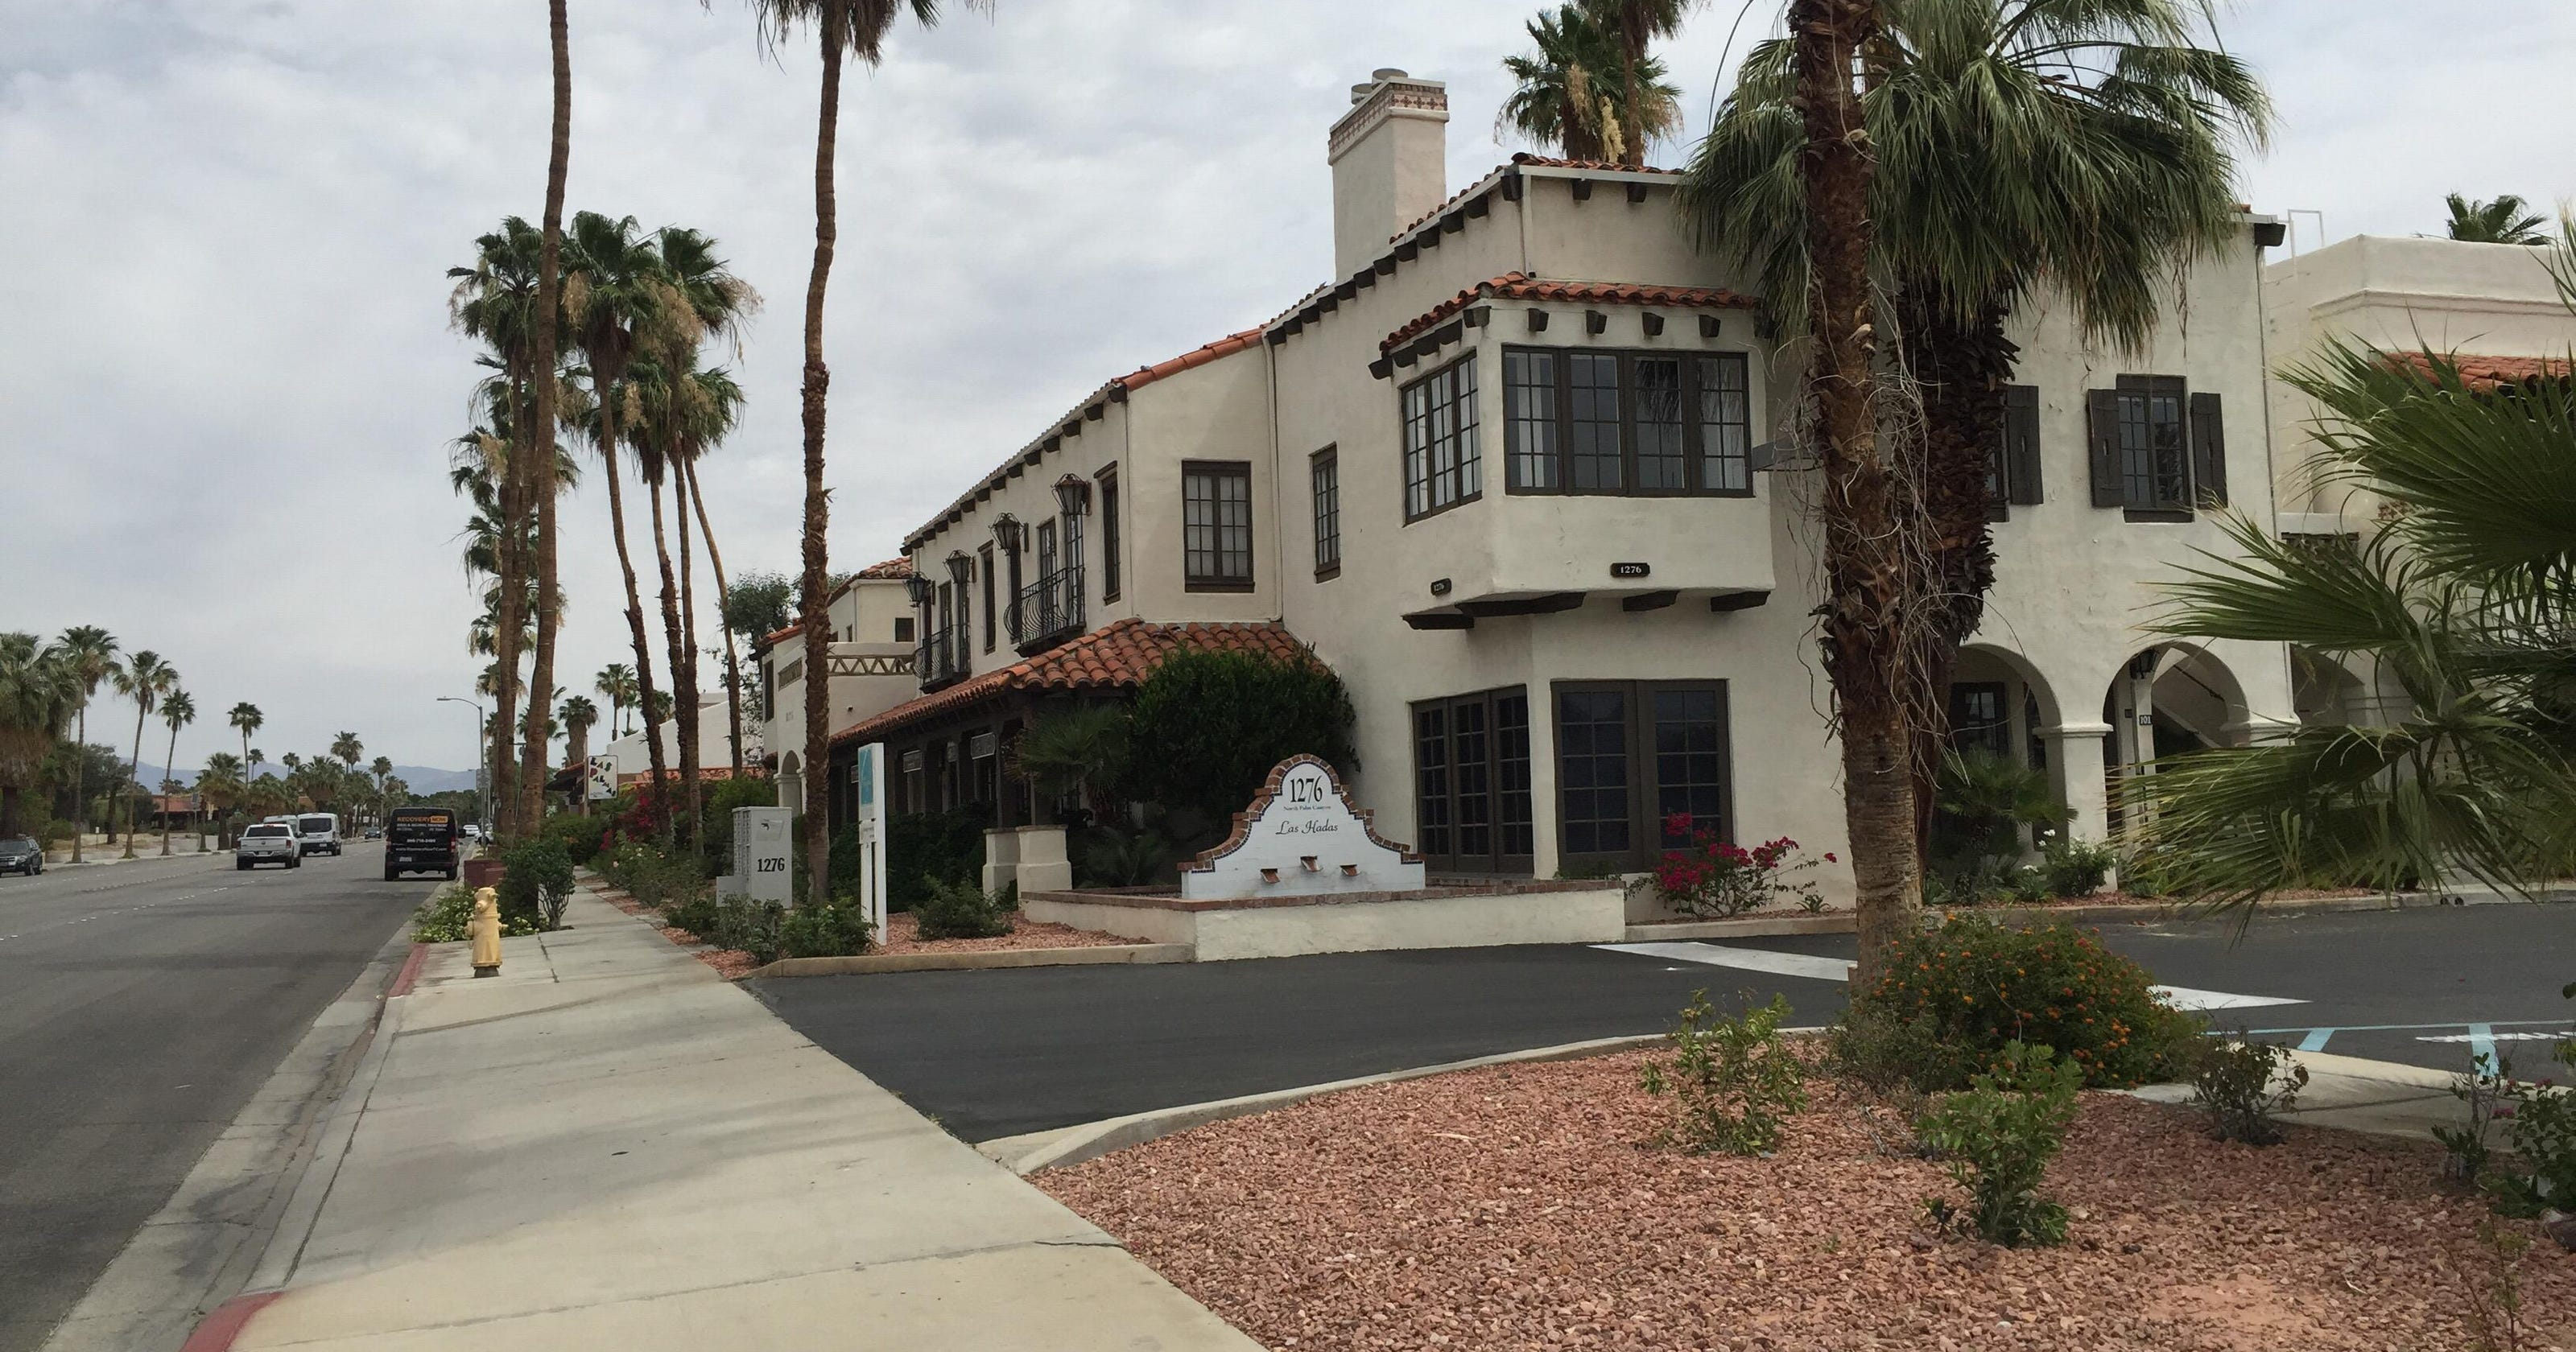 Vacation Palm Springs Sold To Wyndham